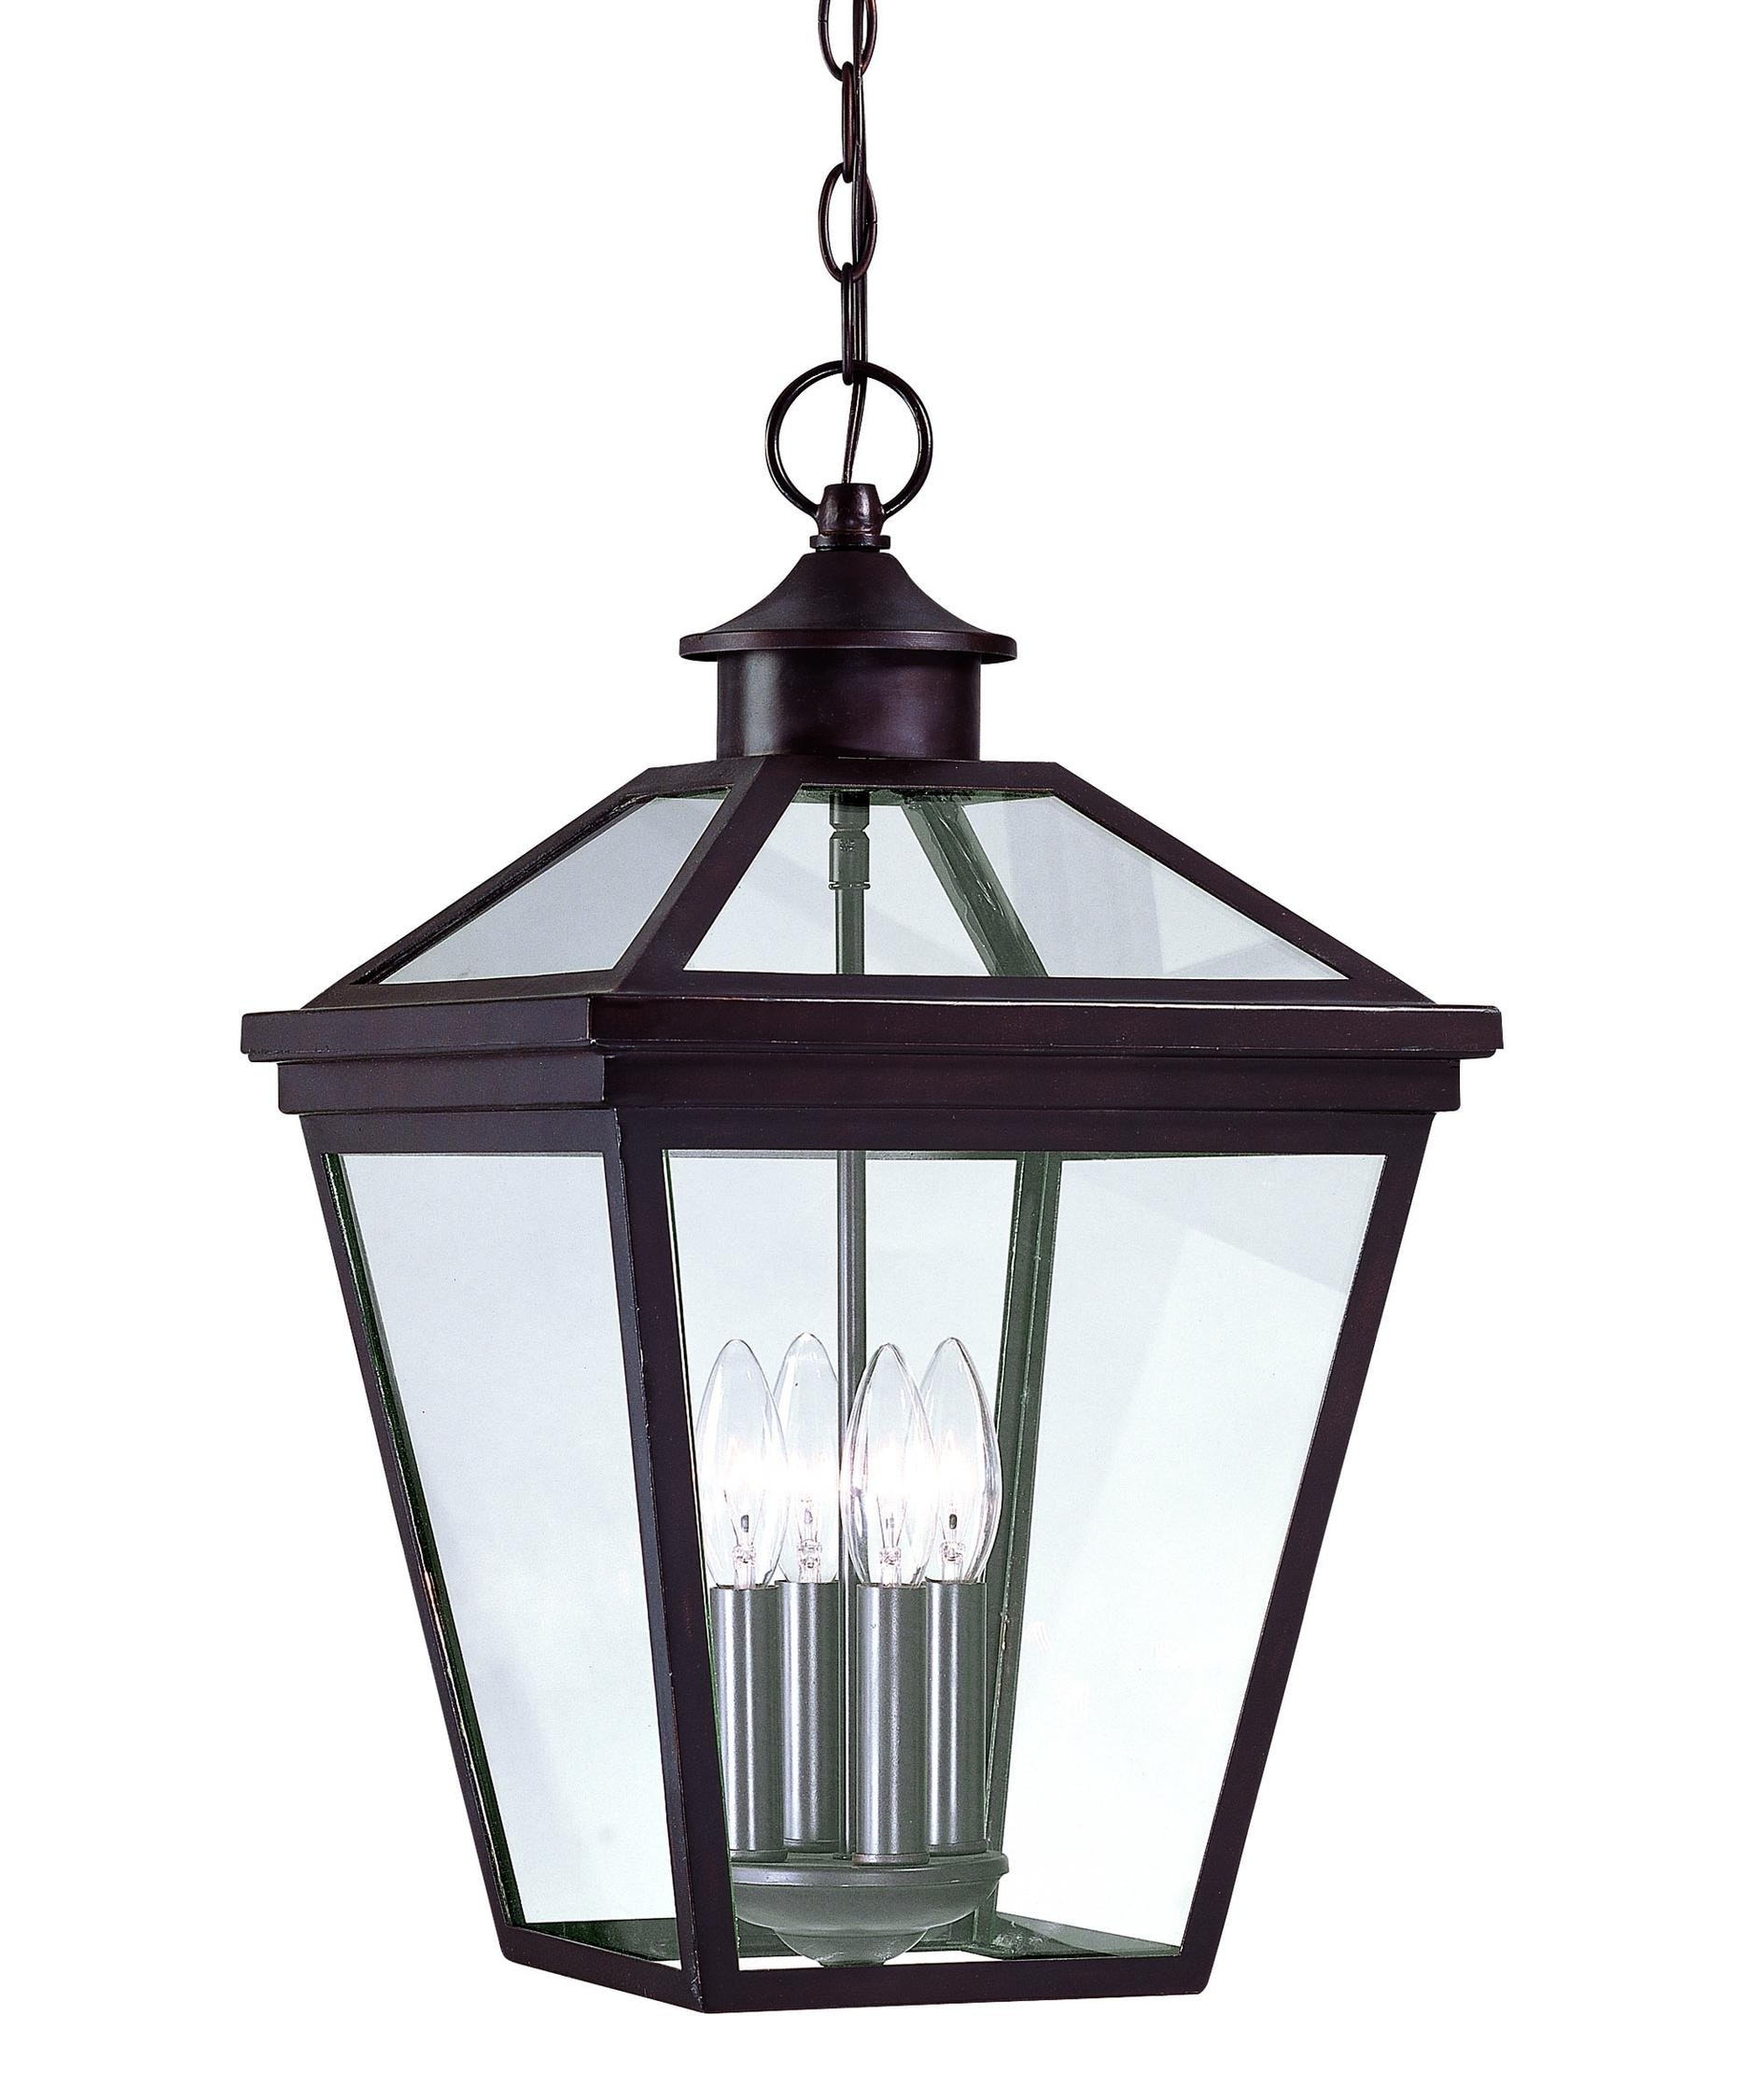 Inspiration about Designers Fountain Orb Ellington Ds Hanging Lanterns Oil Photo With With Outdoor Hanging Lanterns At Lowes (#4 of 15)